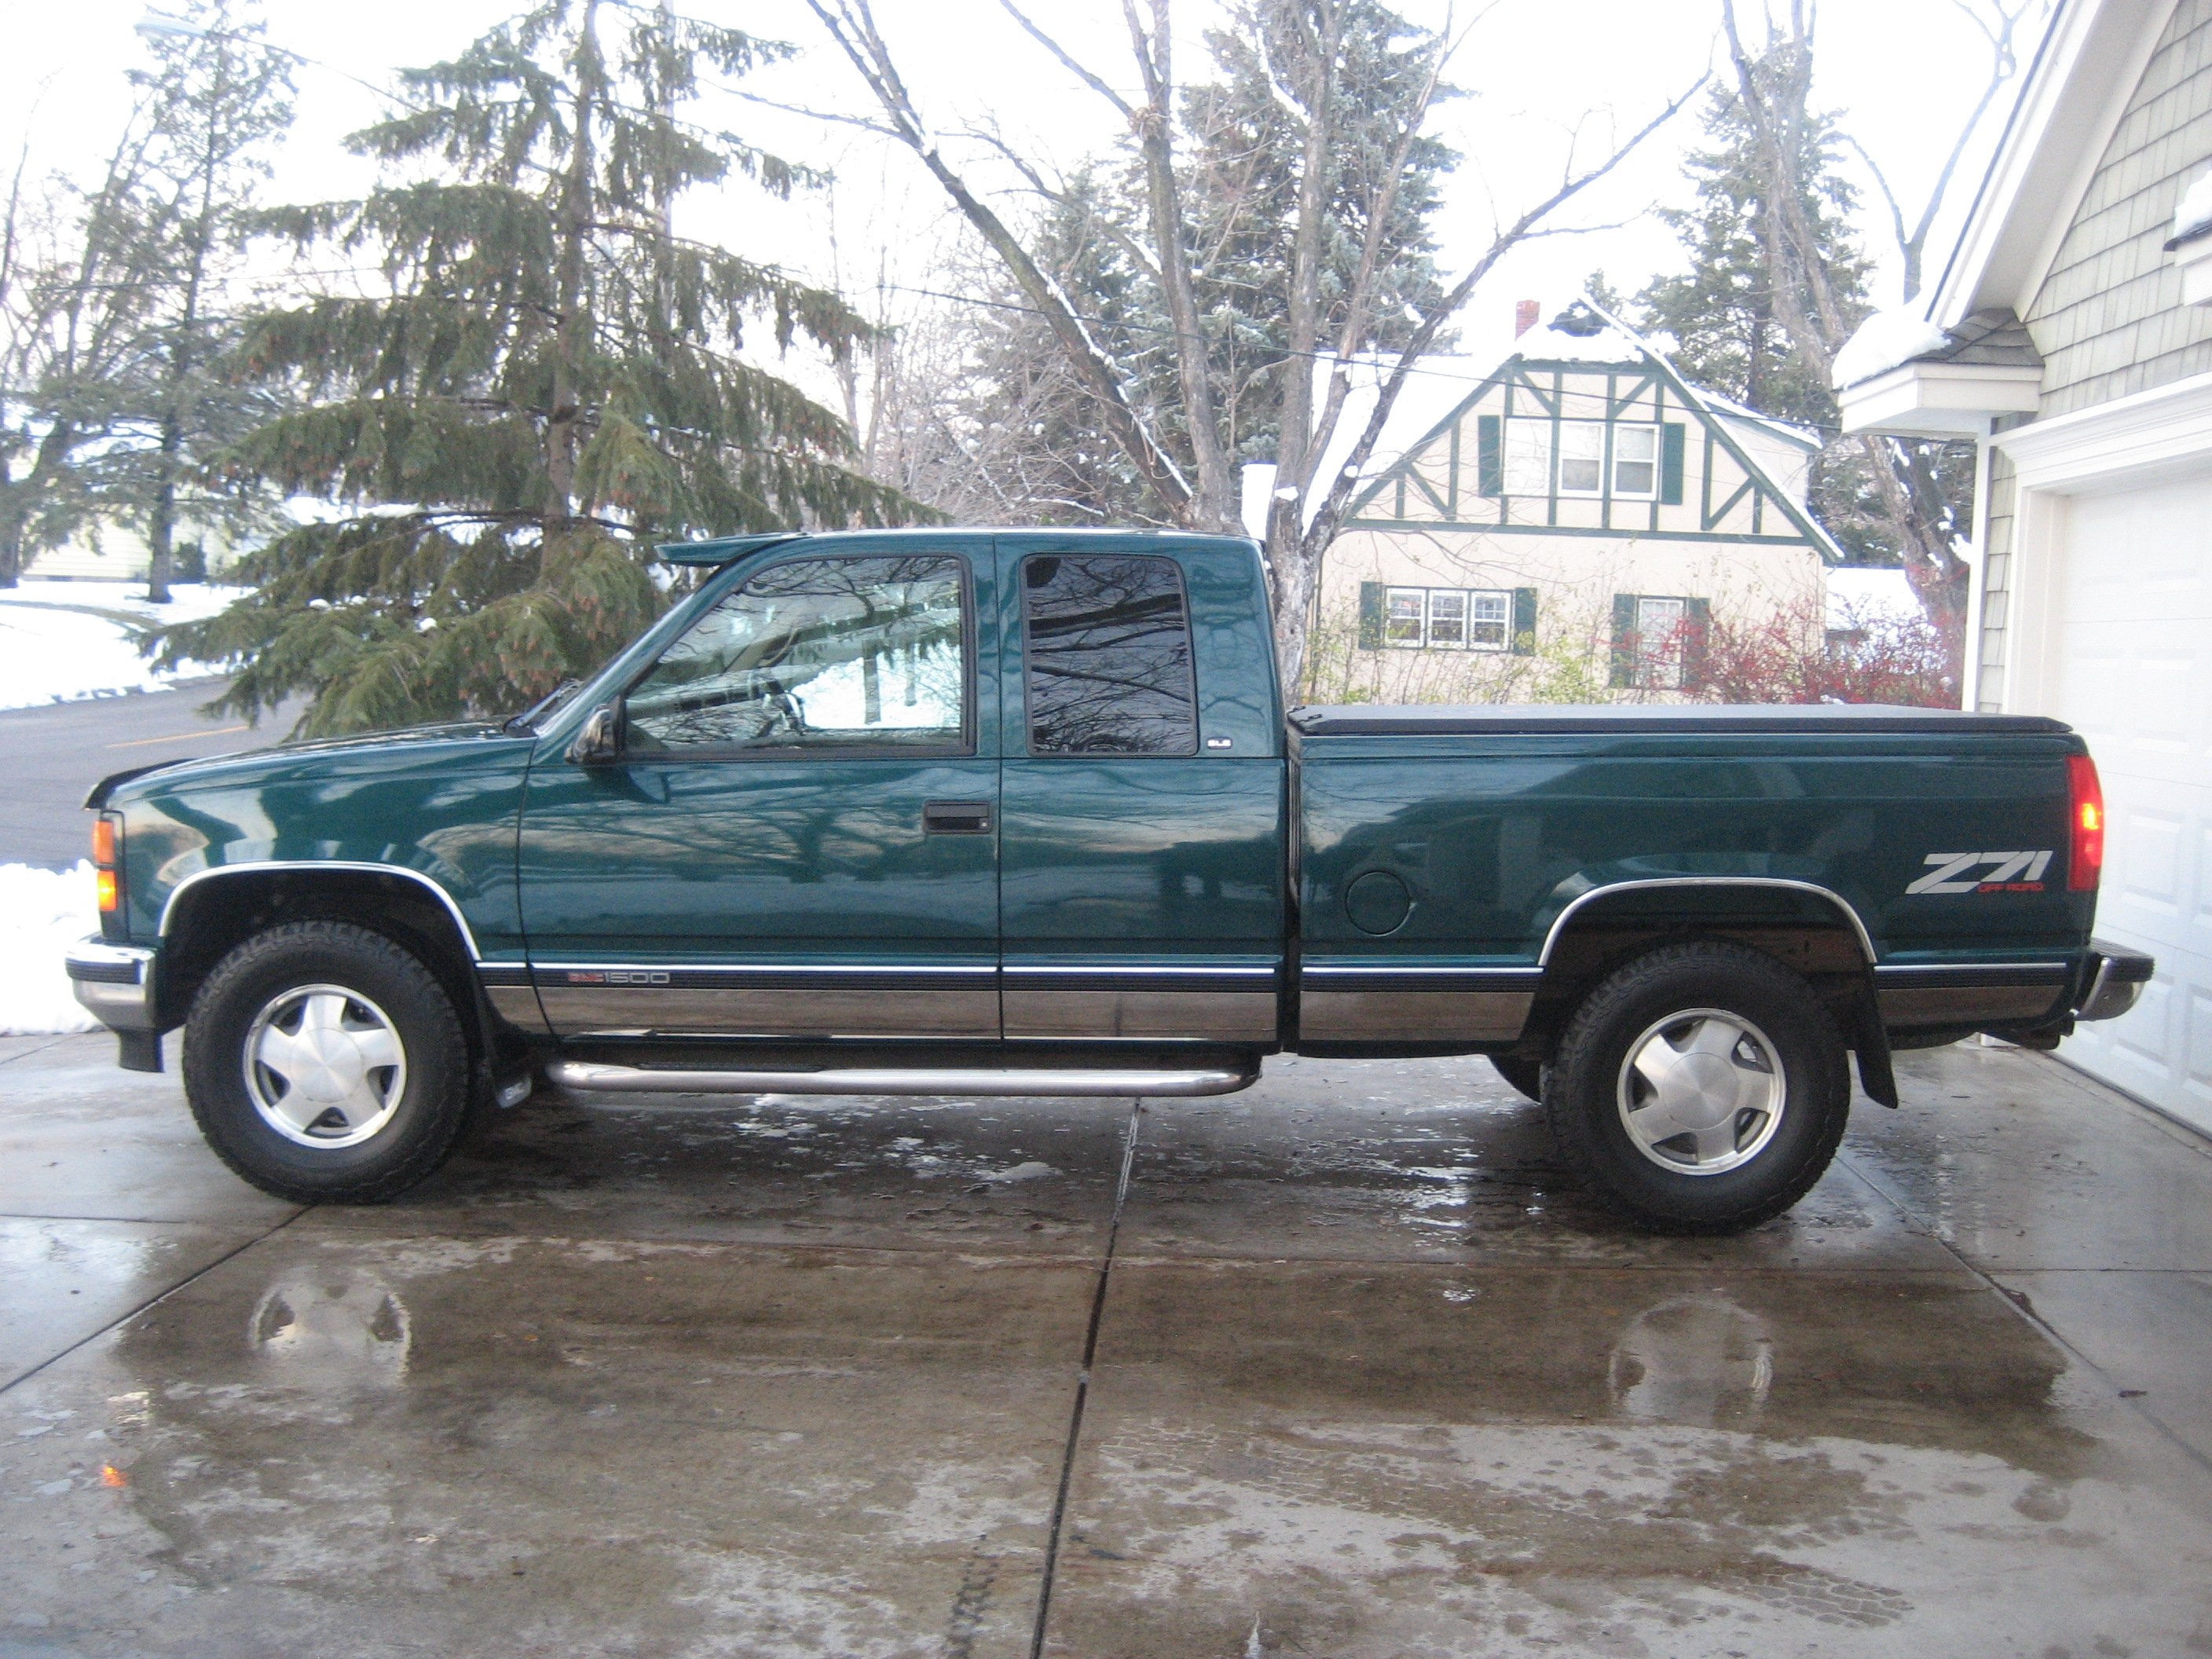 gmpickups 1998 gmc sierra 1500 extended cab specs photos. Black Bedroom Furniture Sets. Home Design Ideas